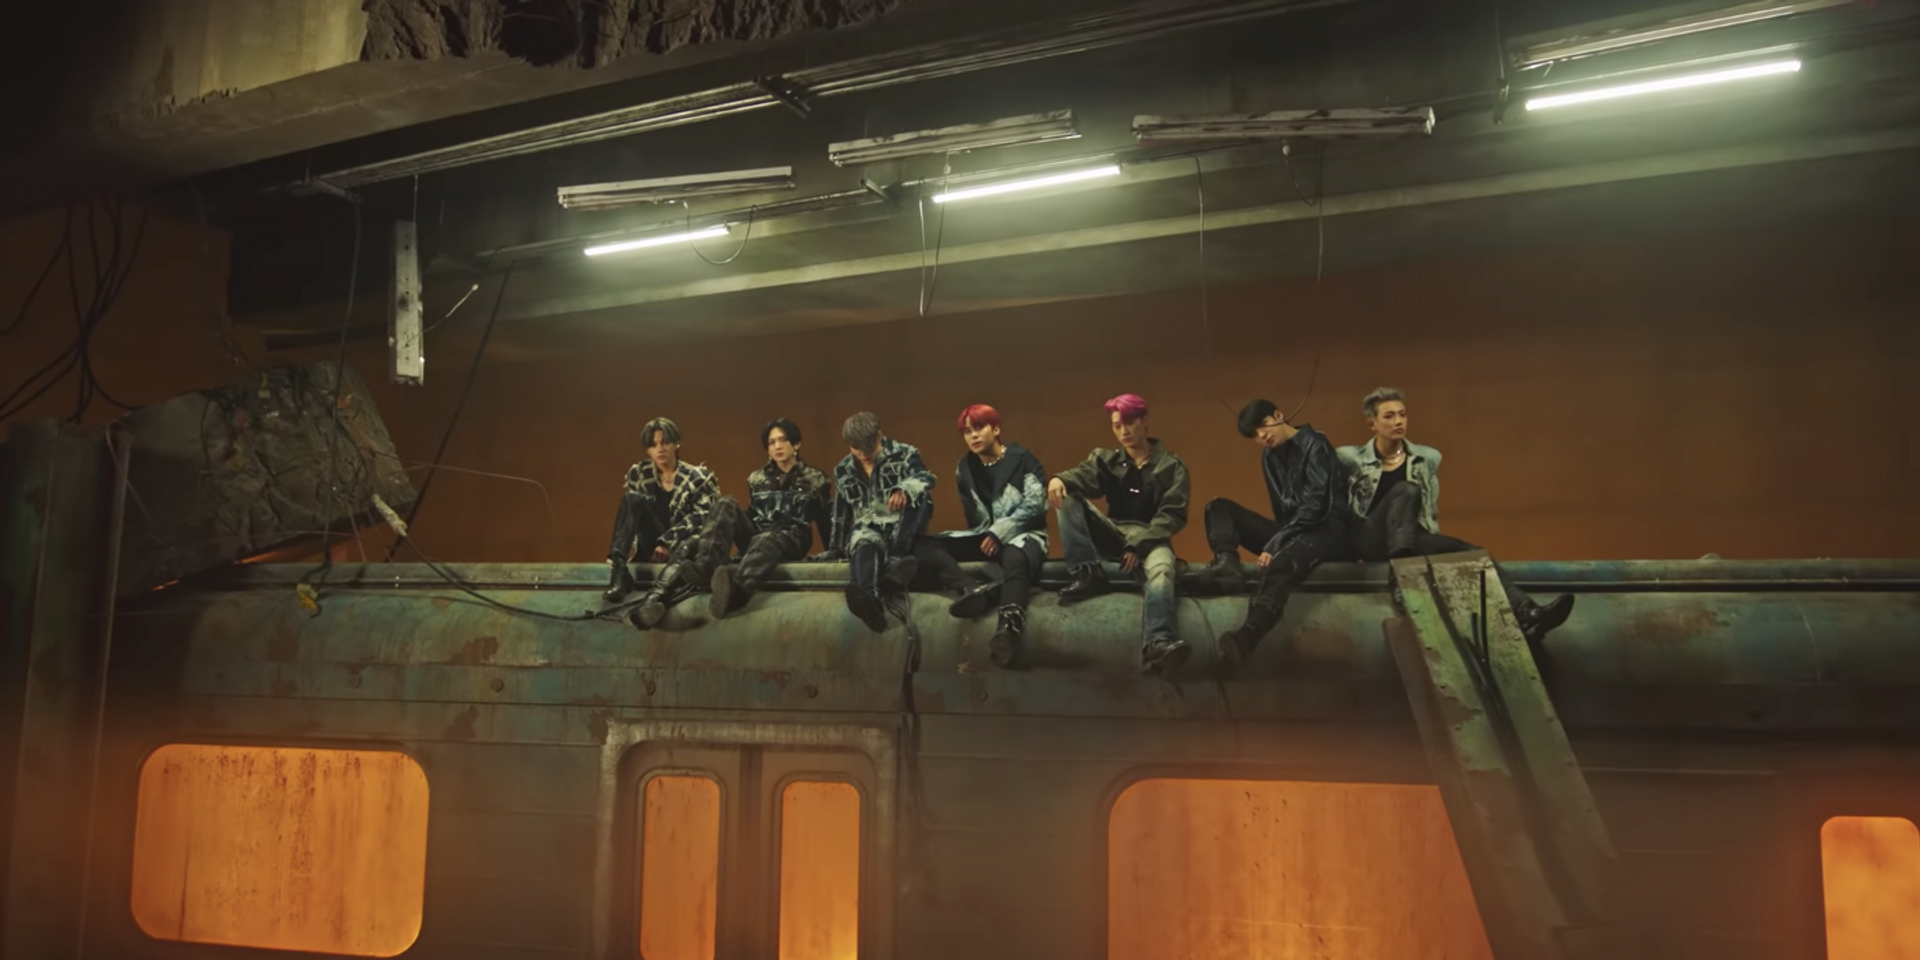 ATEEZ drop latest album 'ZERO: FEVER Part 2', dazzle fans with new music video for 'Fireworks (I'm The One)' – watch